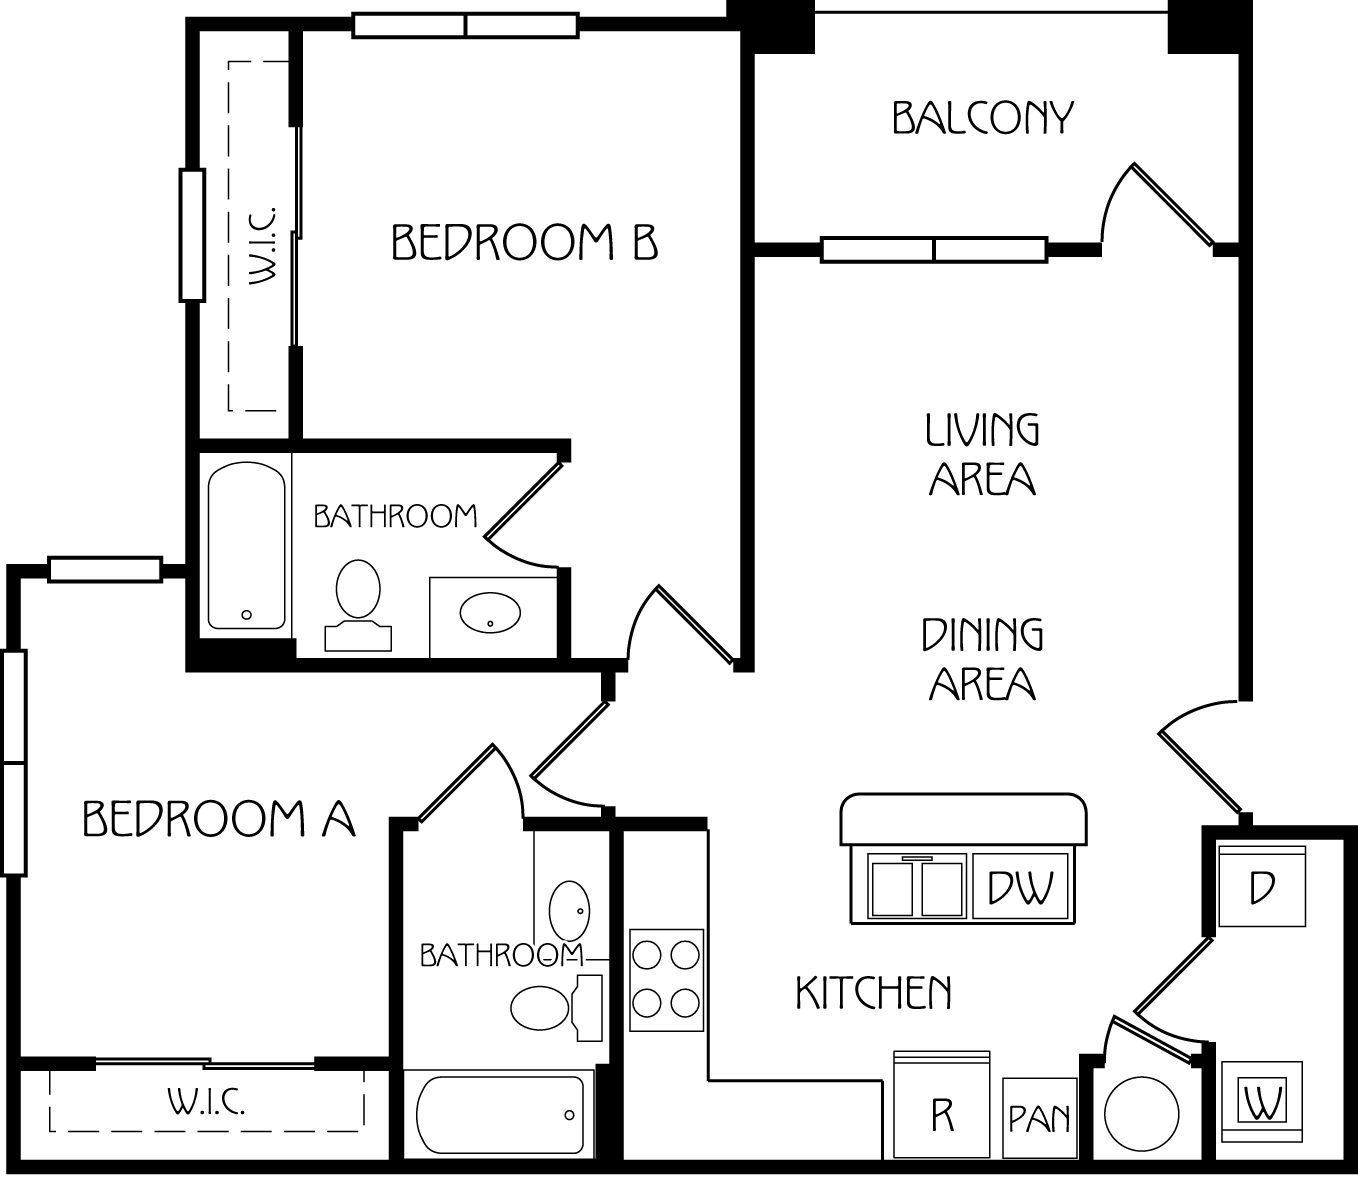 The retreat at corvallis apartments in corvallis oregon for The retreat floor plans